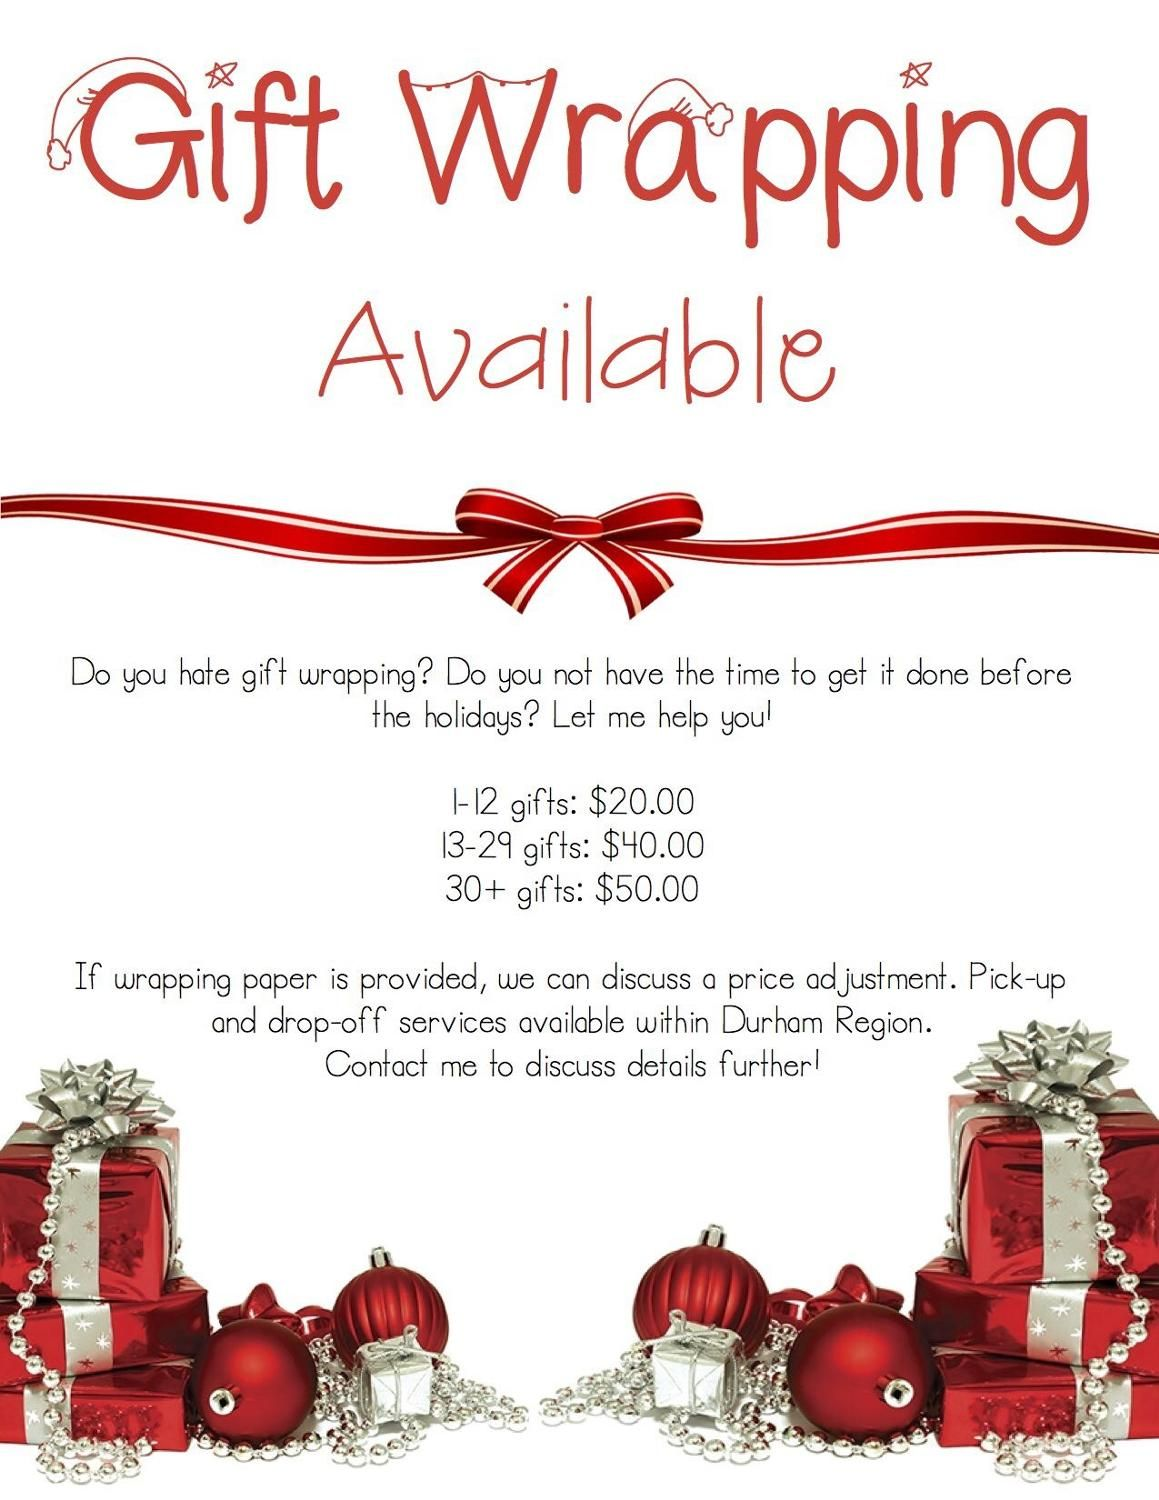 Best Gift Wrapping Services For Sale In Scarborough Ontario For 2019 Gift Wrapping Services Gift Wrapping Inspiration Creative Gift Wrapping